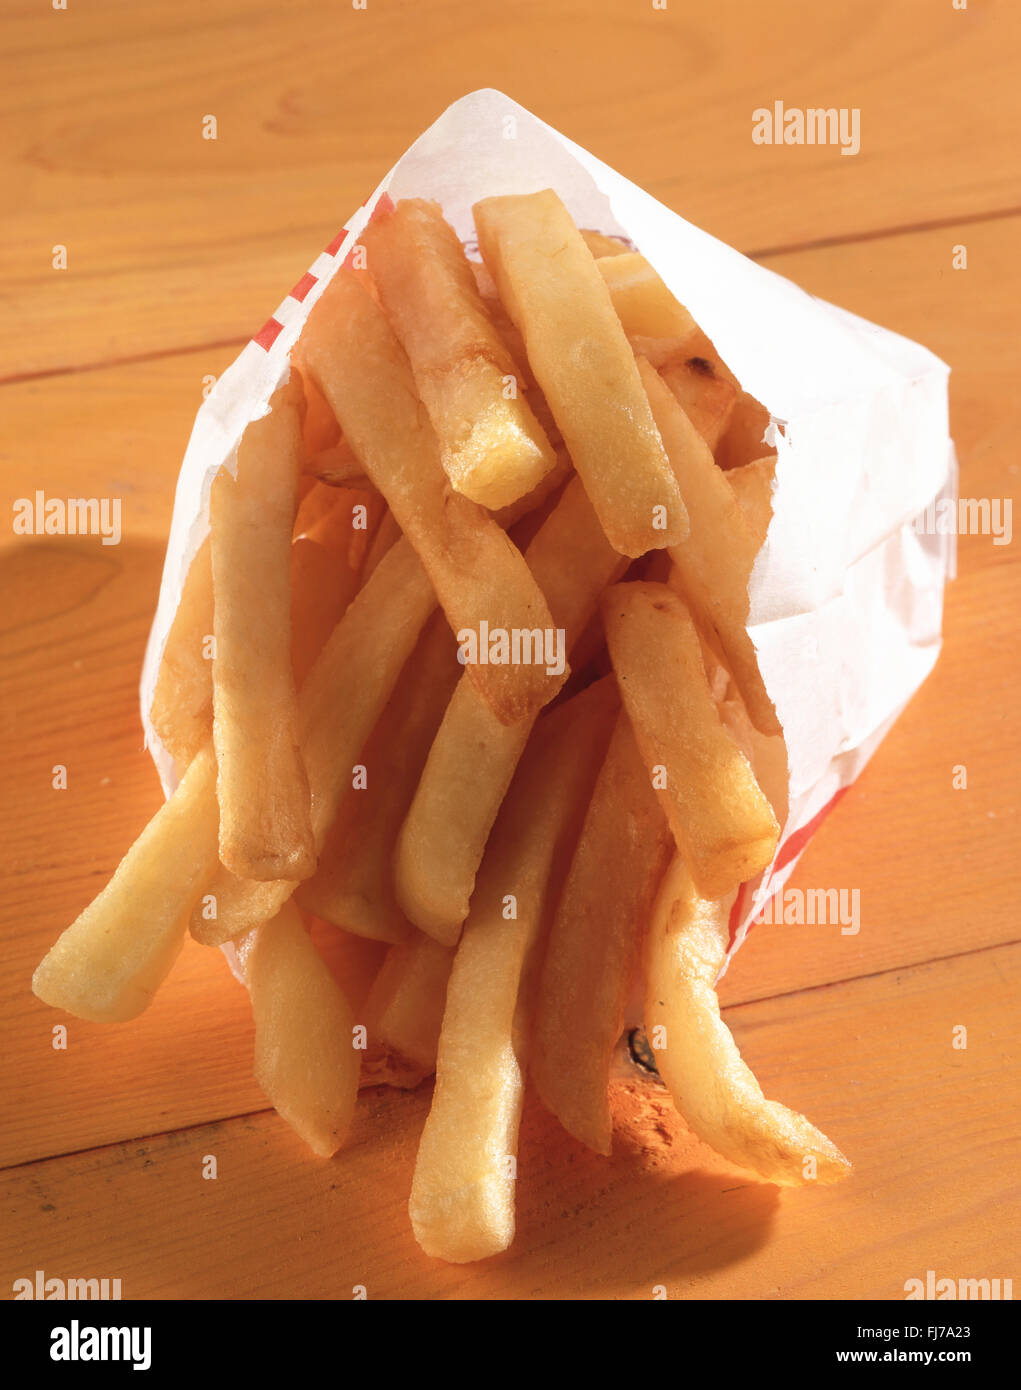 Small packet of french fries from Kentucy Fried Chicken, Ashford, Surrey, England, United Kingdom Stock Photo